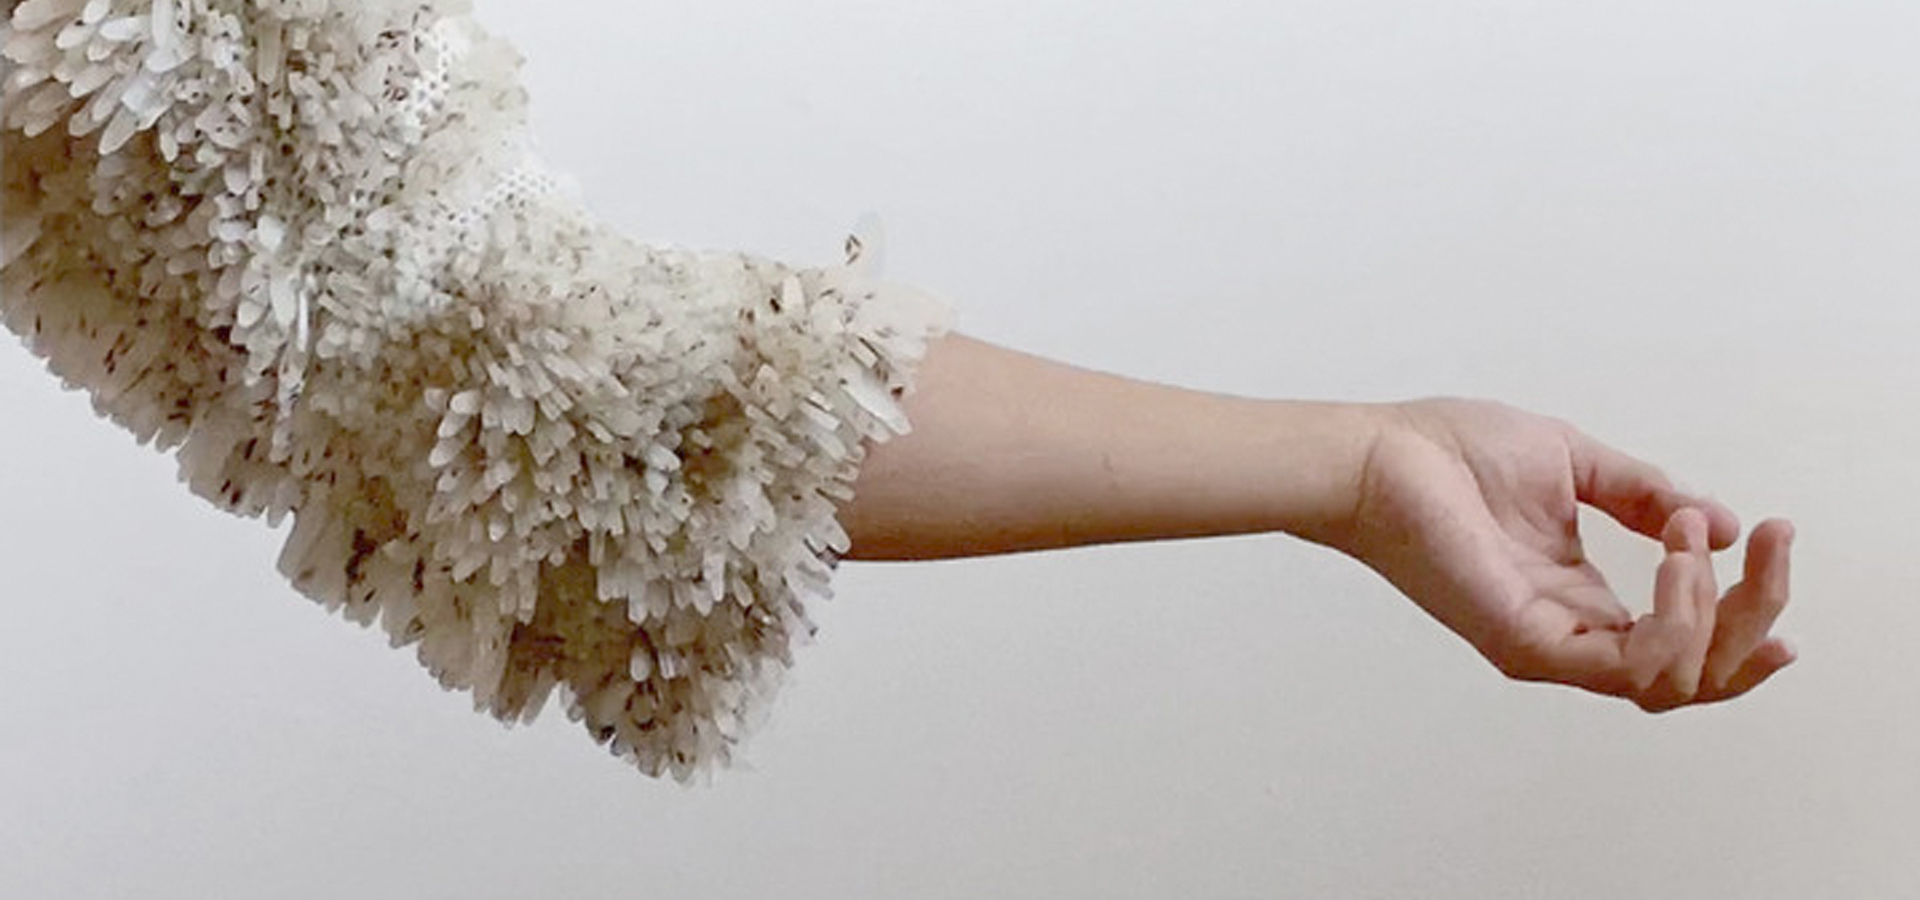 A person's arm, who is wearing a hydroponic garment that is sprouting seeds.